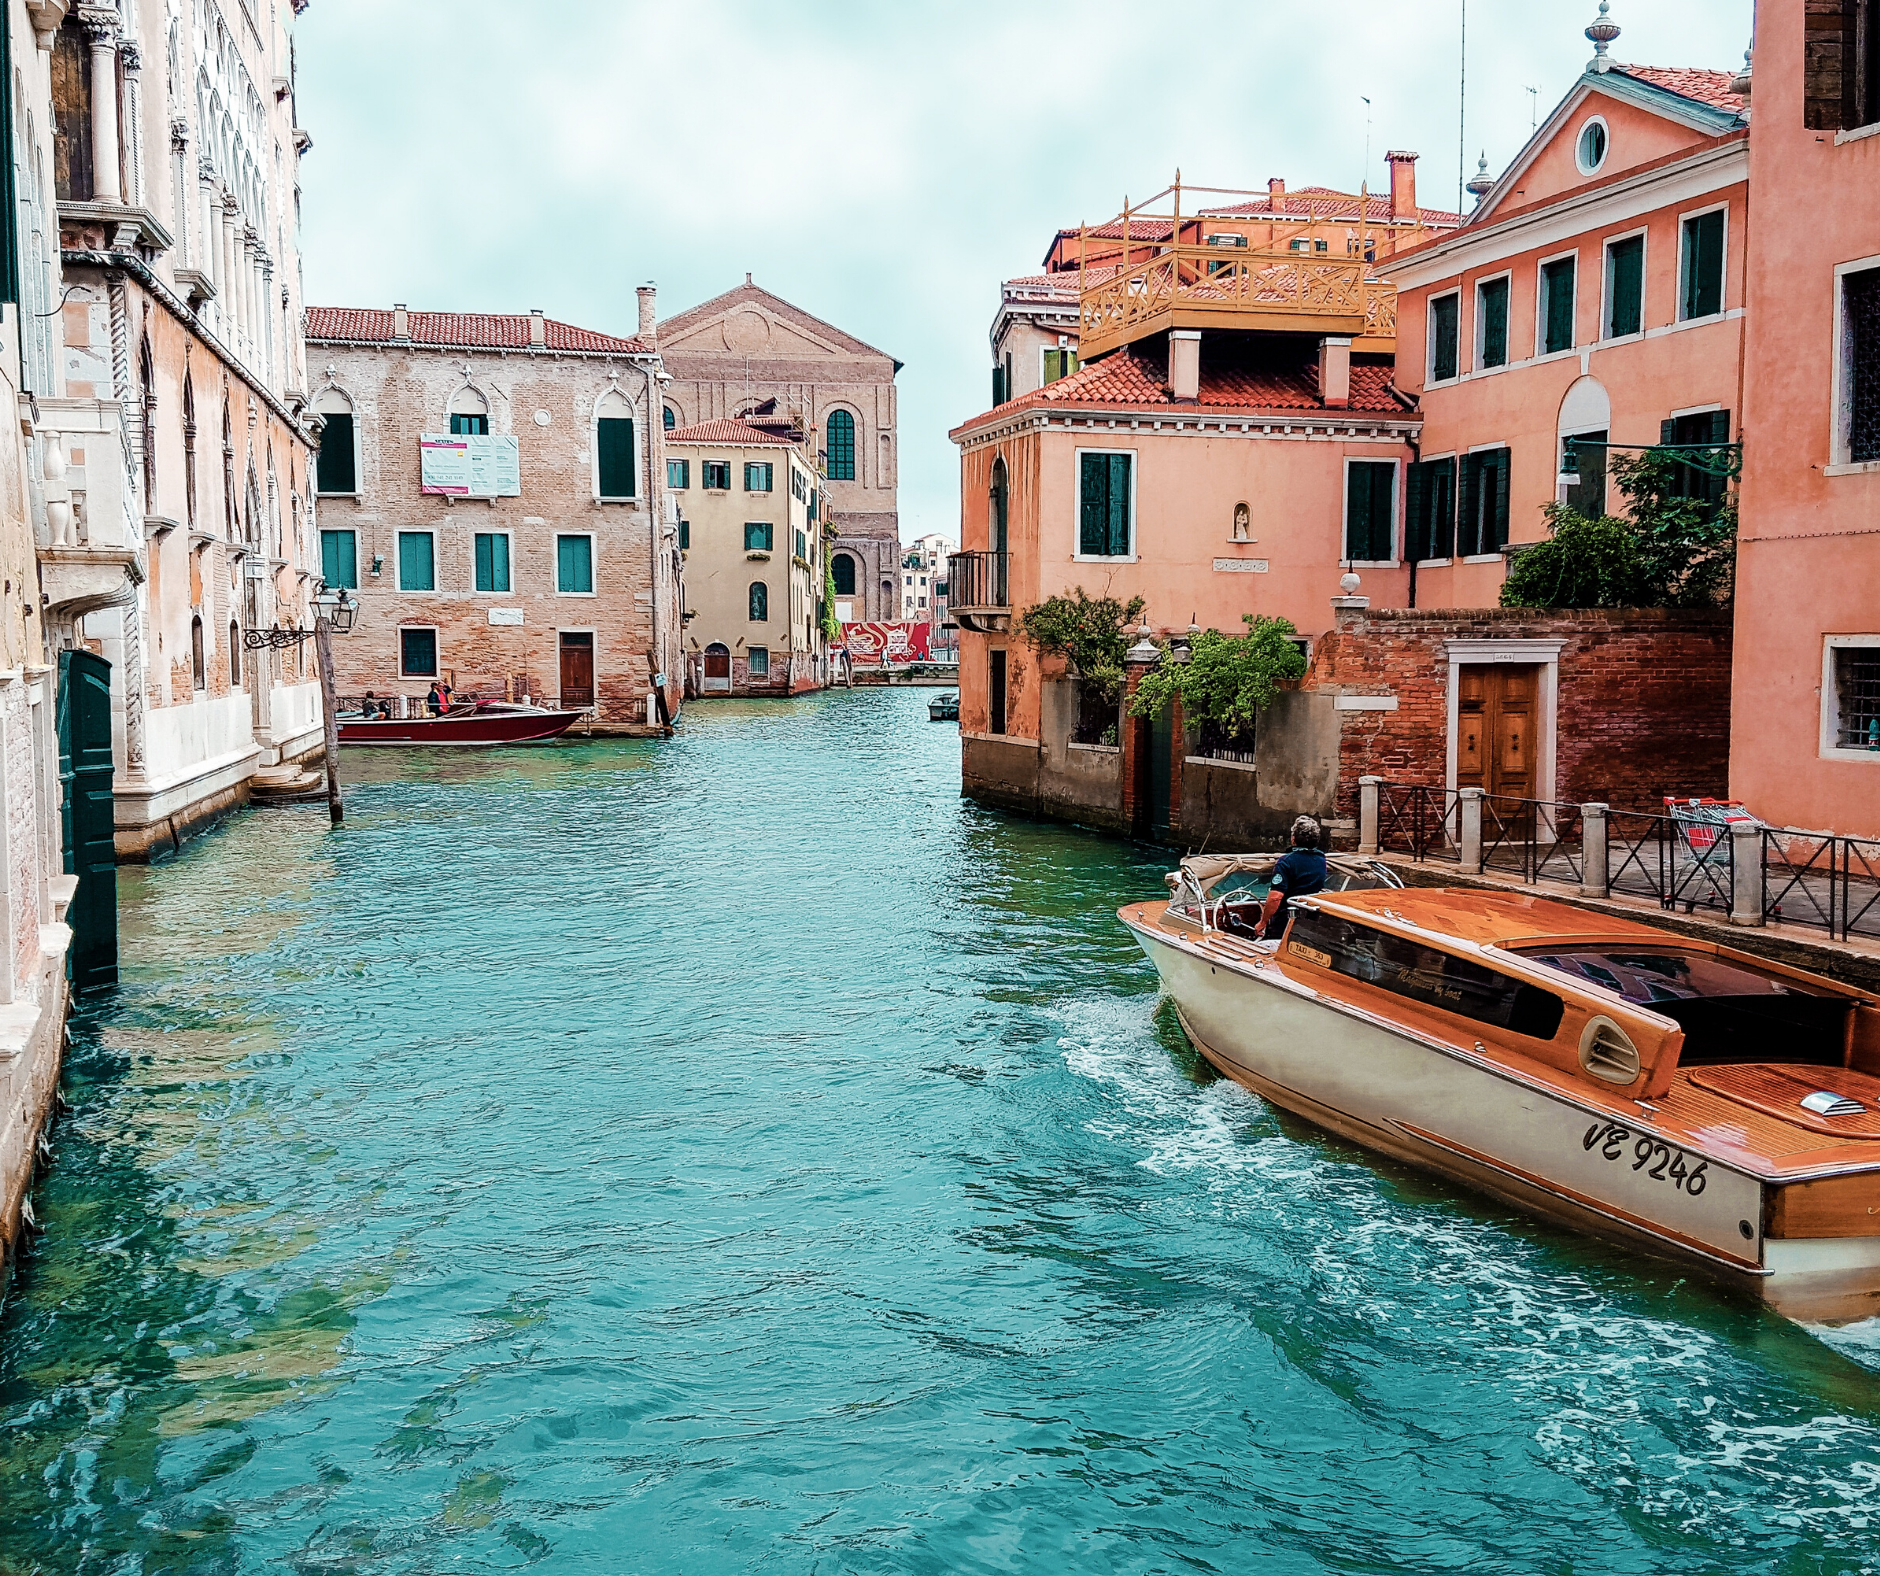 an italian canal surrounded by houses